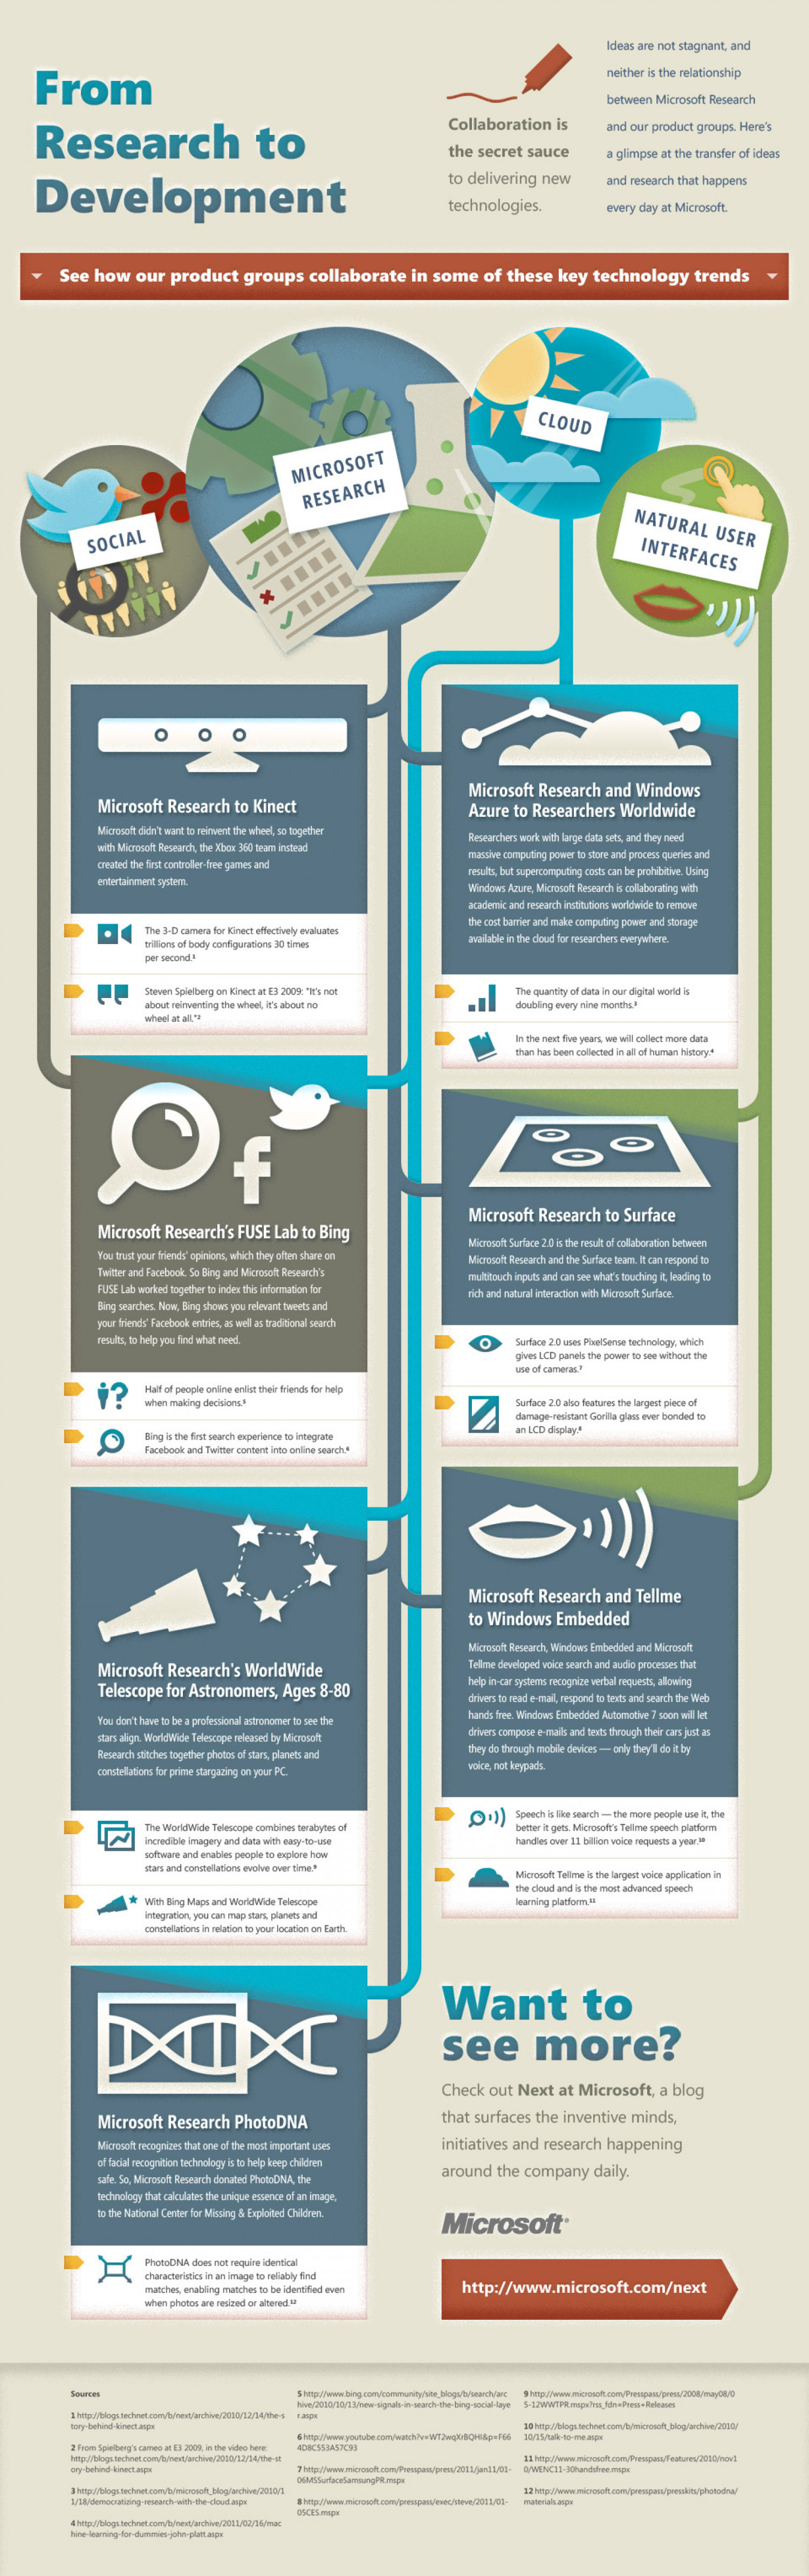 From Research to Development  Infographic